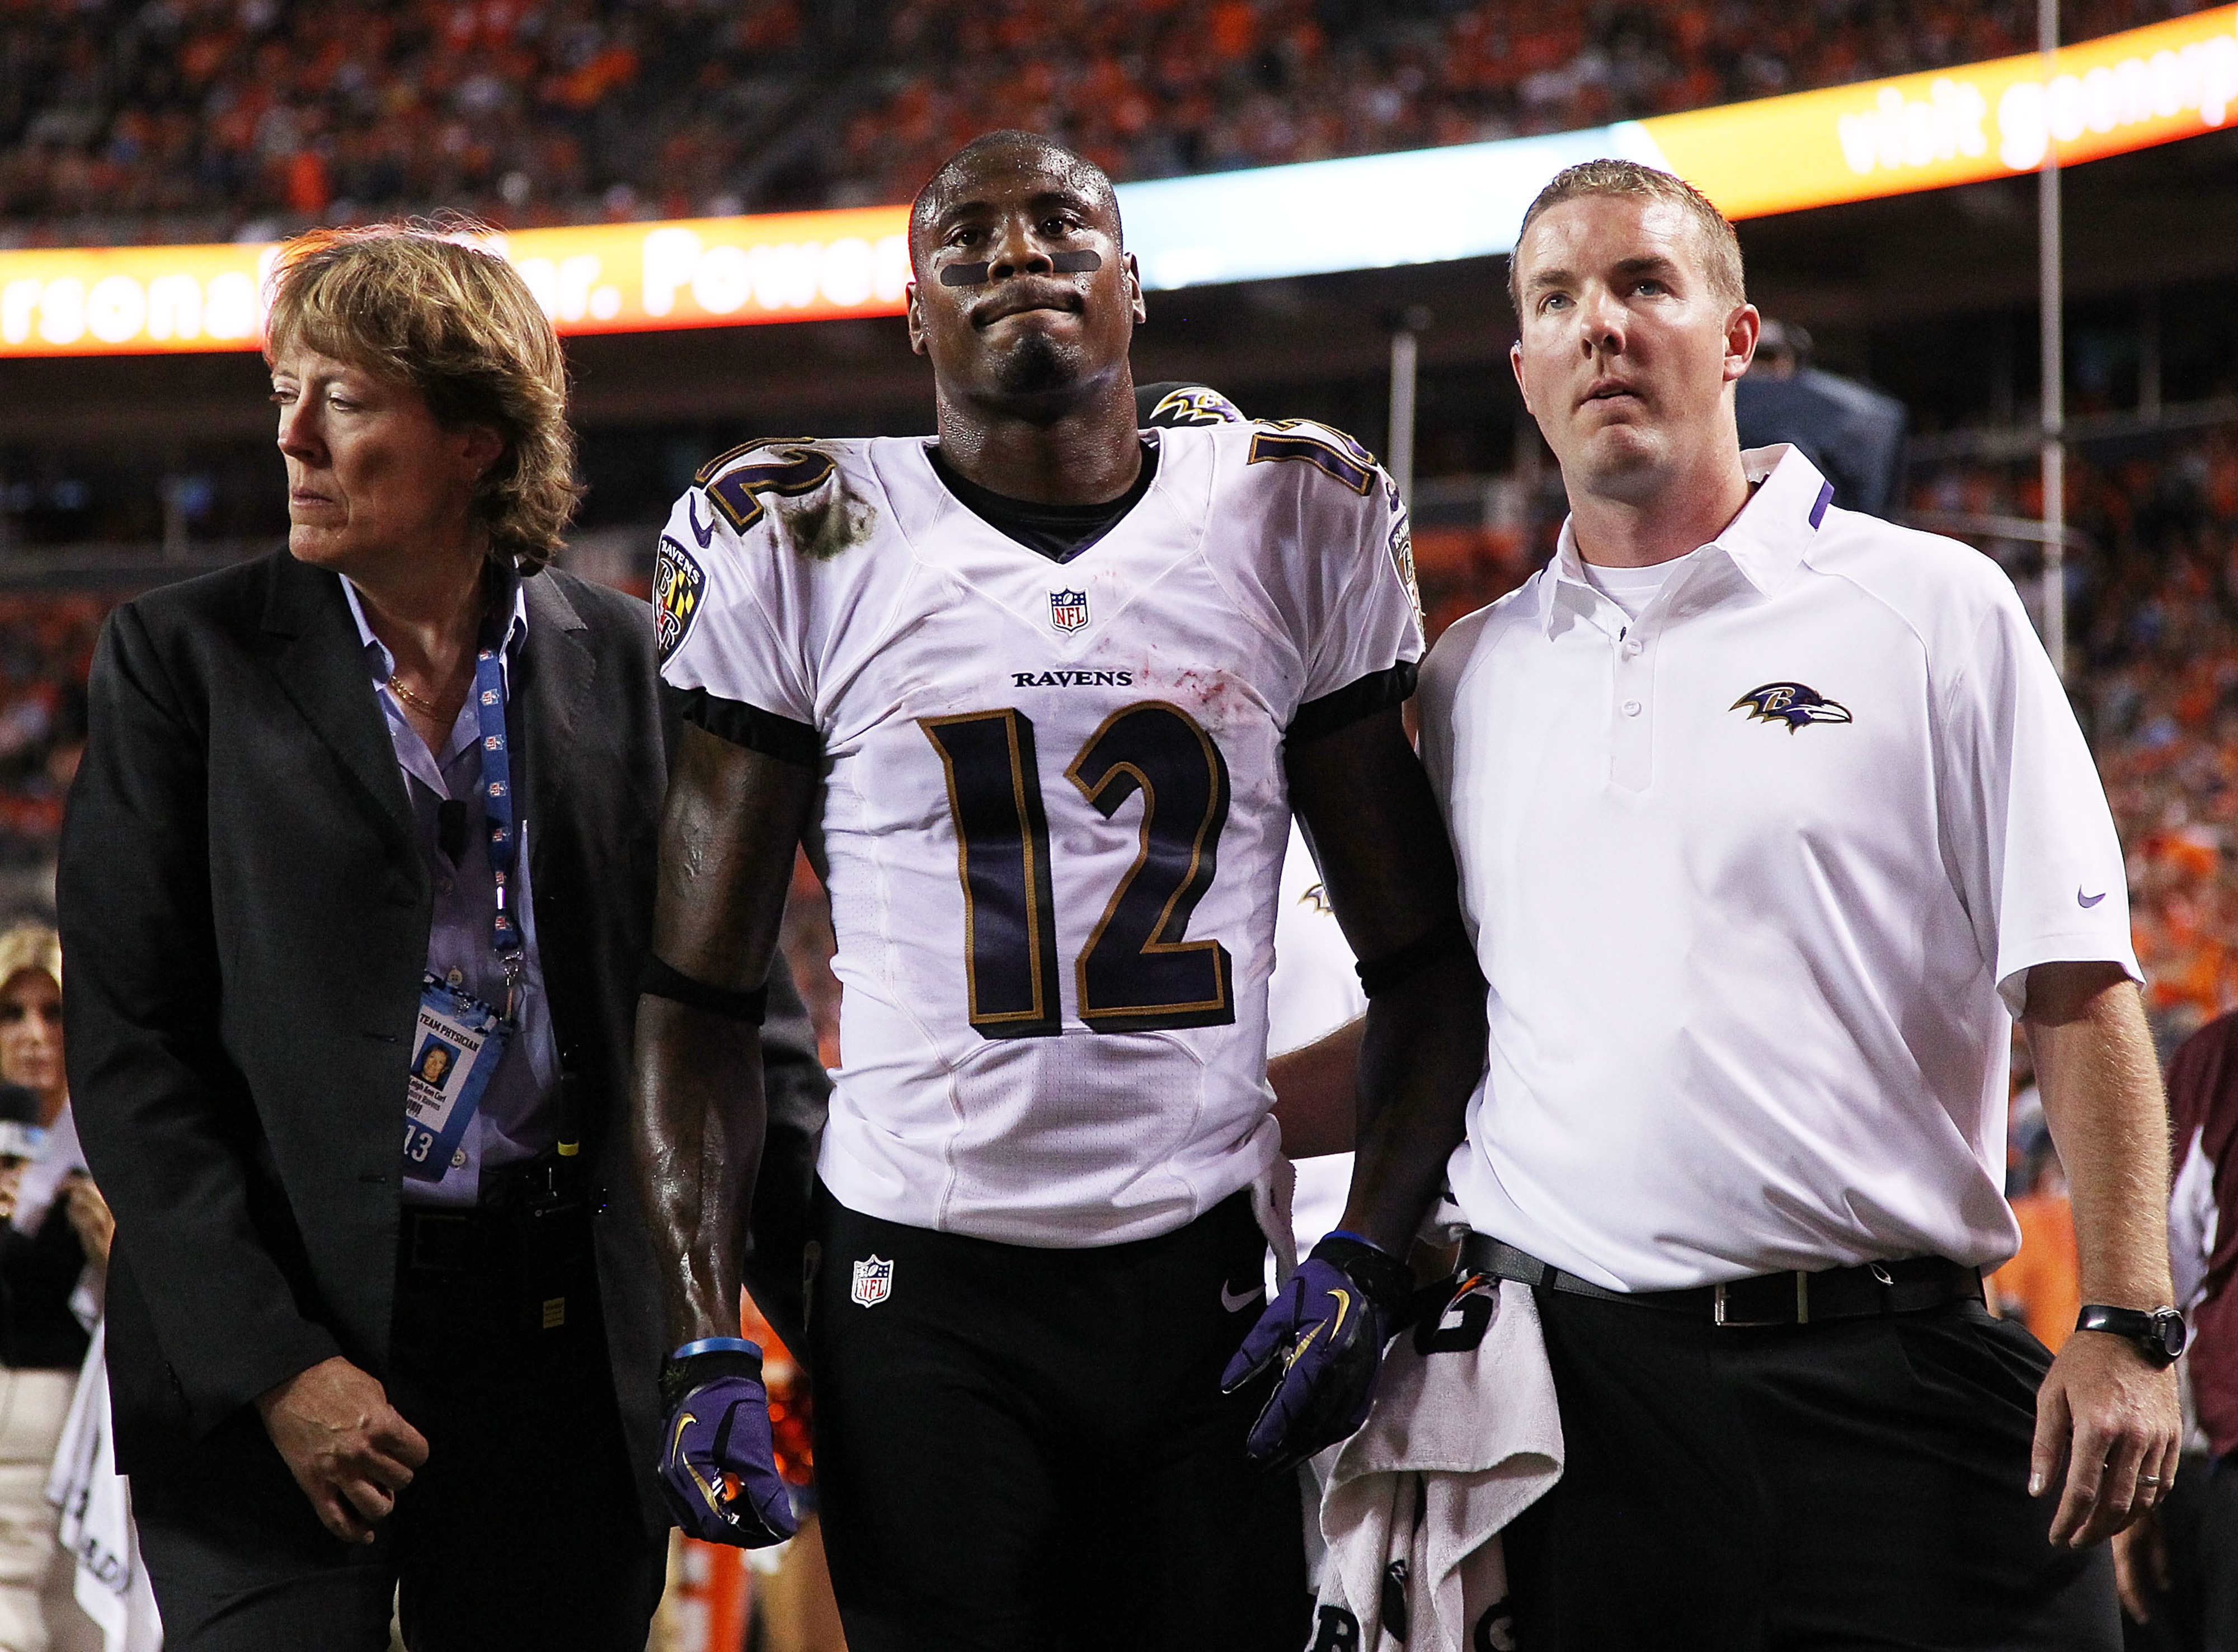 Jacoby Jones injury: Ravens WR out 4-6 weeks with MCL sprain, per report